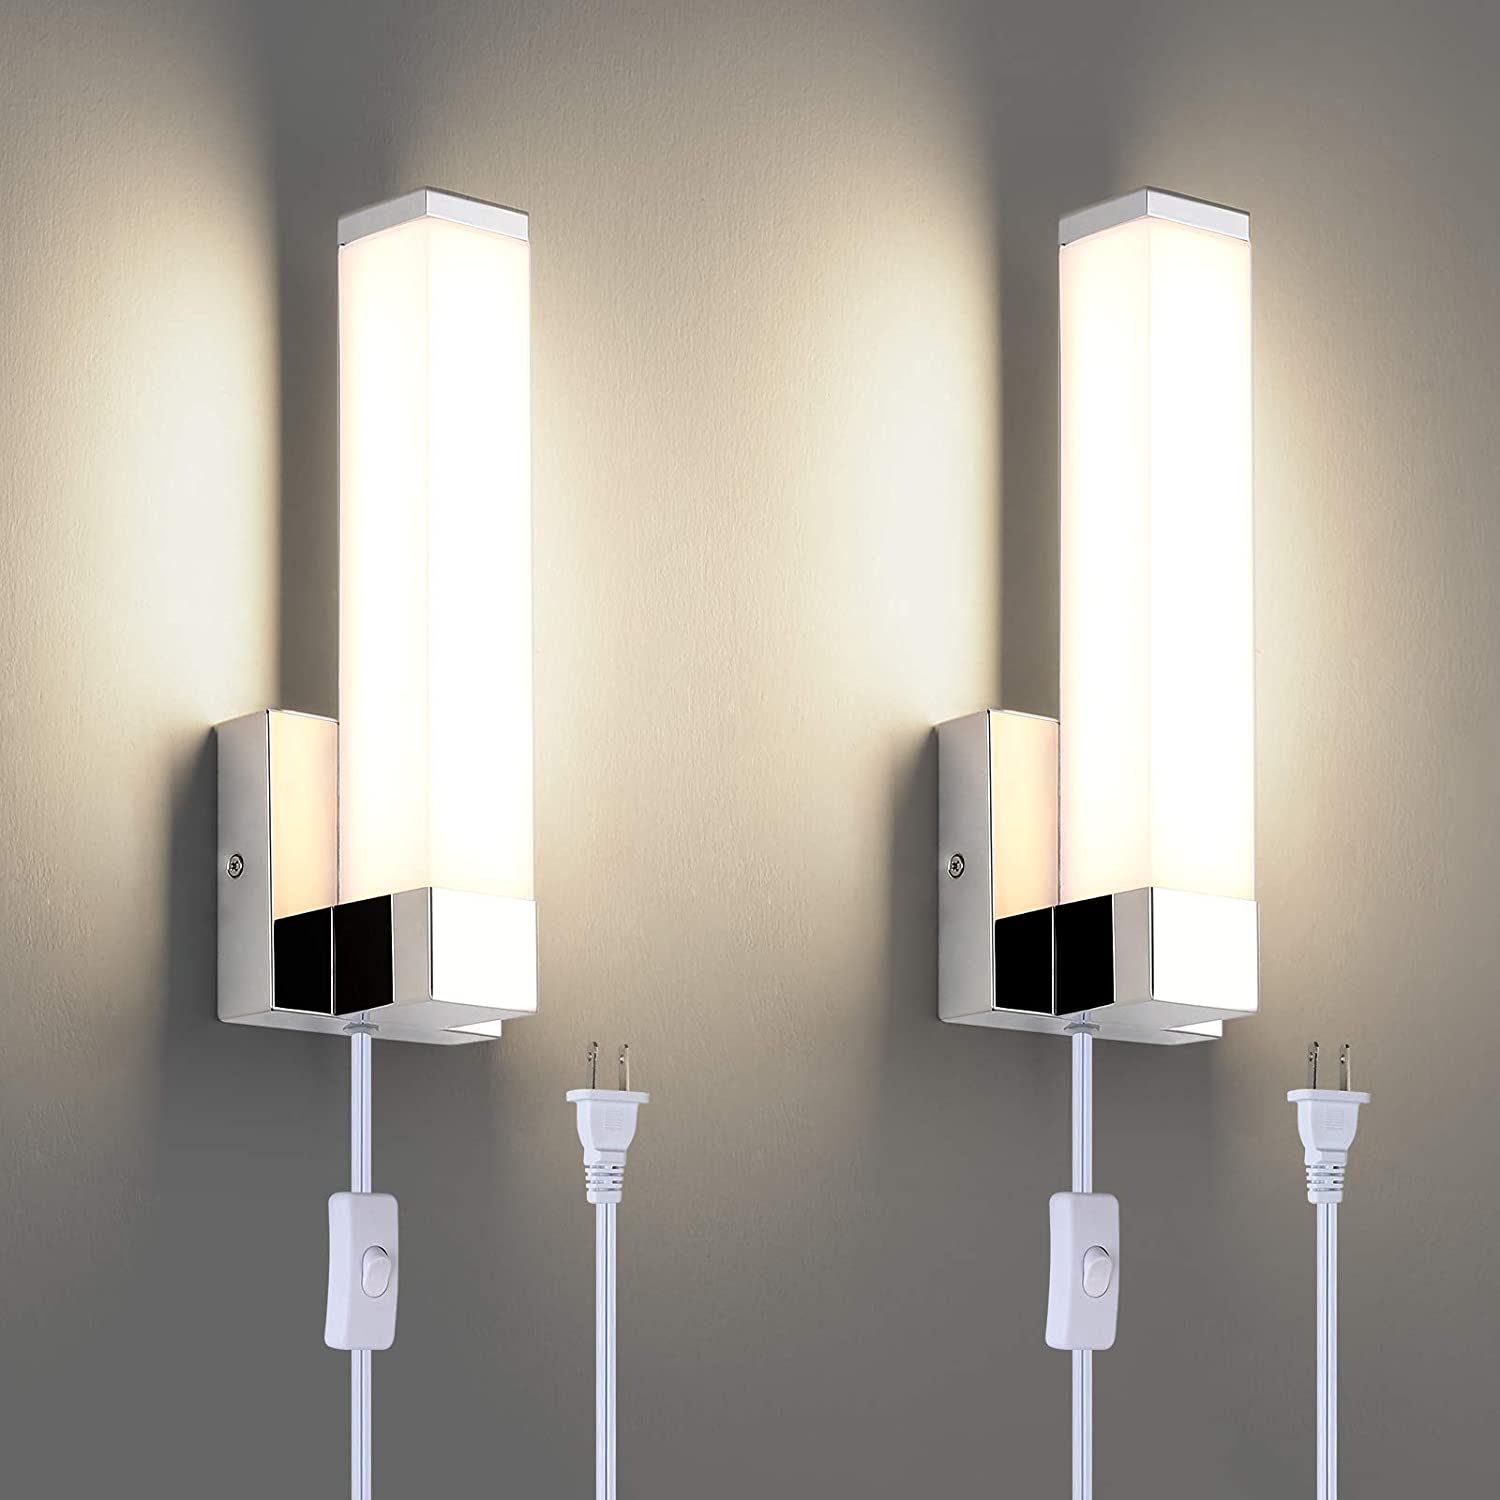 Joosenhouse Modern Sales LED Wall Lamps Set Bathroo Plug 12W of Two OFFicial mail order in